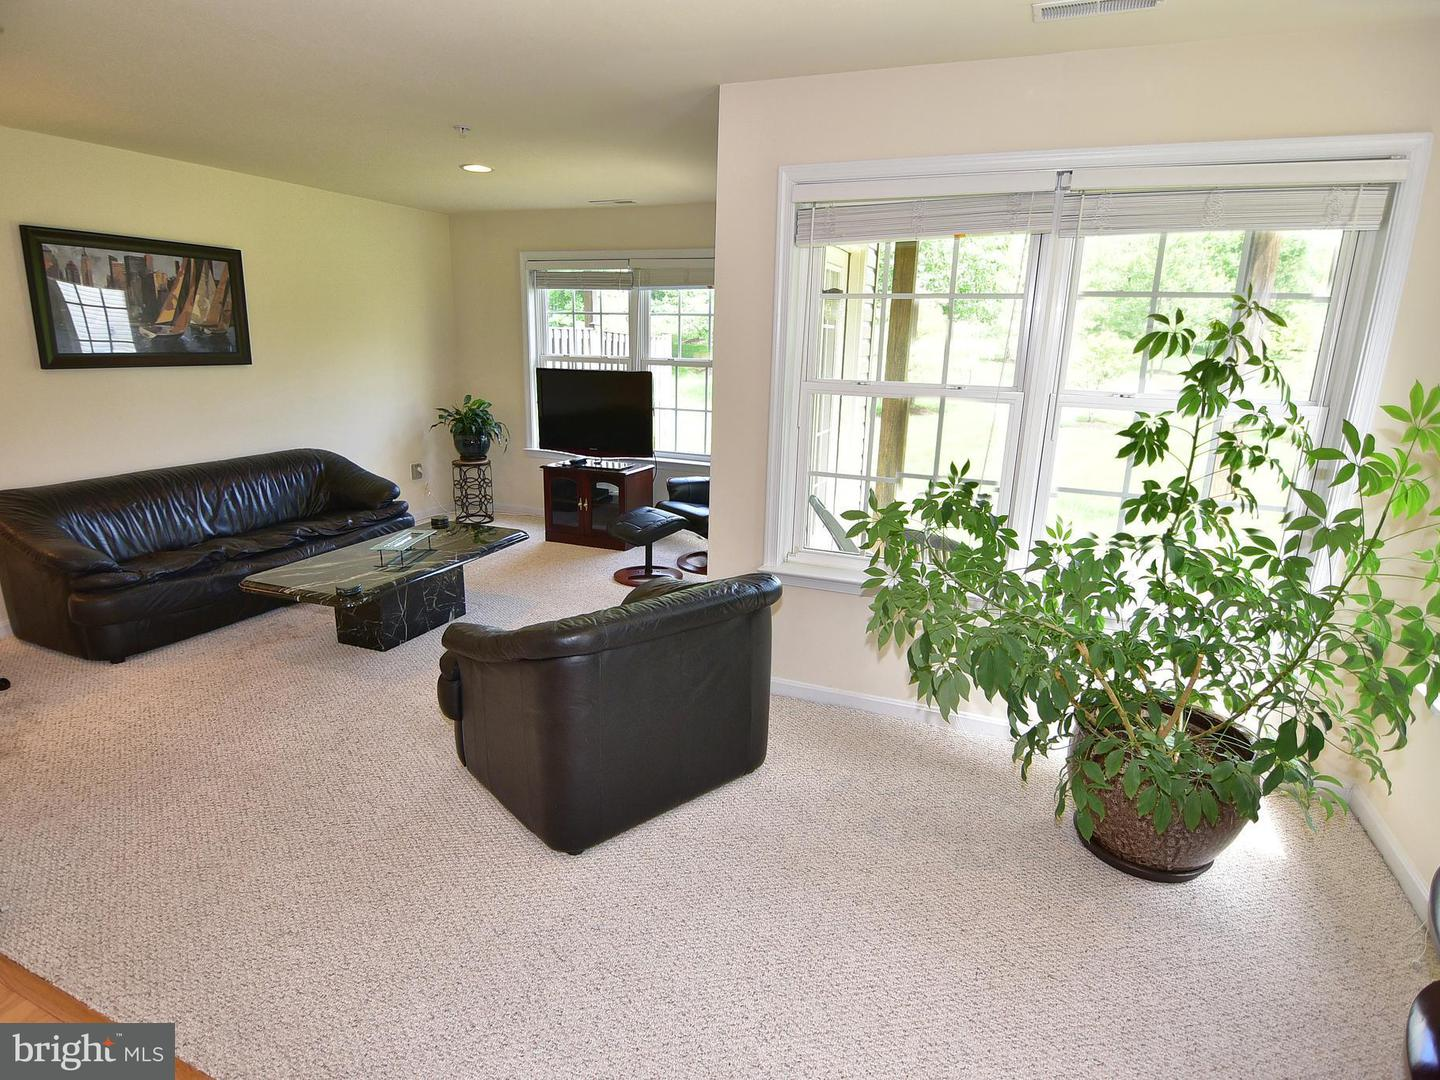 Additional photo for property listing at 1114 Carbondale Way  Gambrills, Maryland 21054 United States